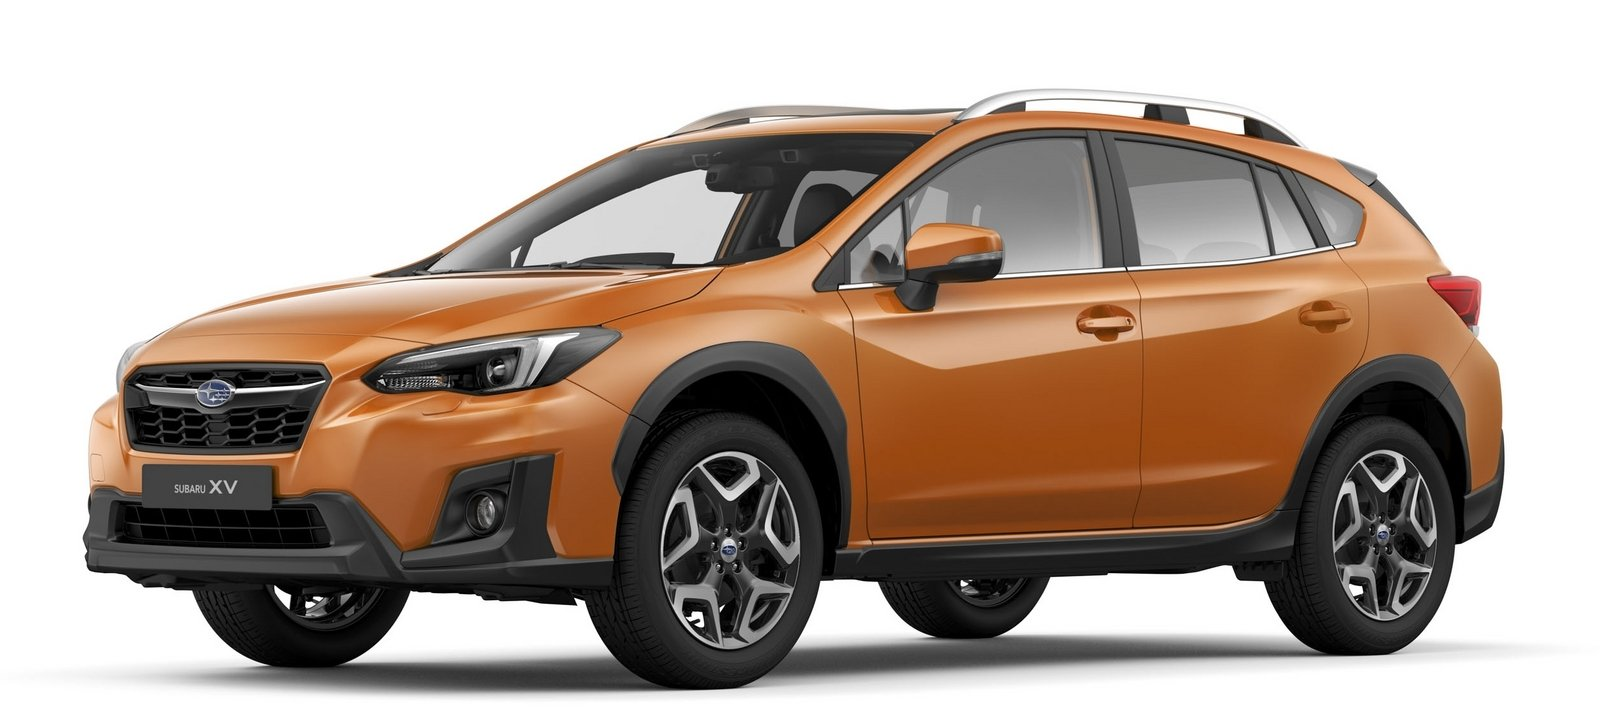 2018 subaru xv crosstrek picture 708987 car review top speed. Black Bedroom Furniture Sets. Home Design Ideas